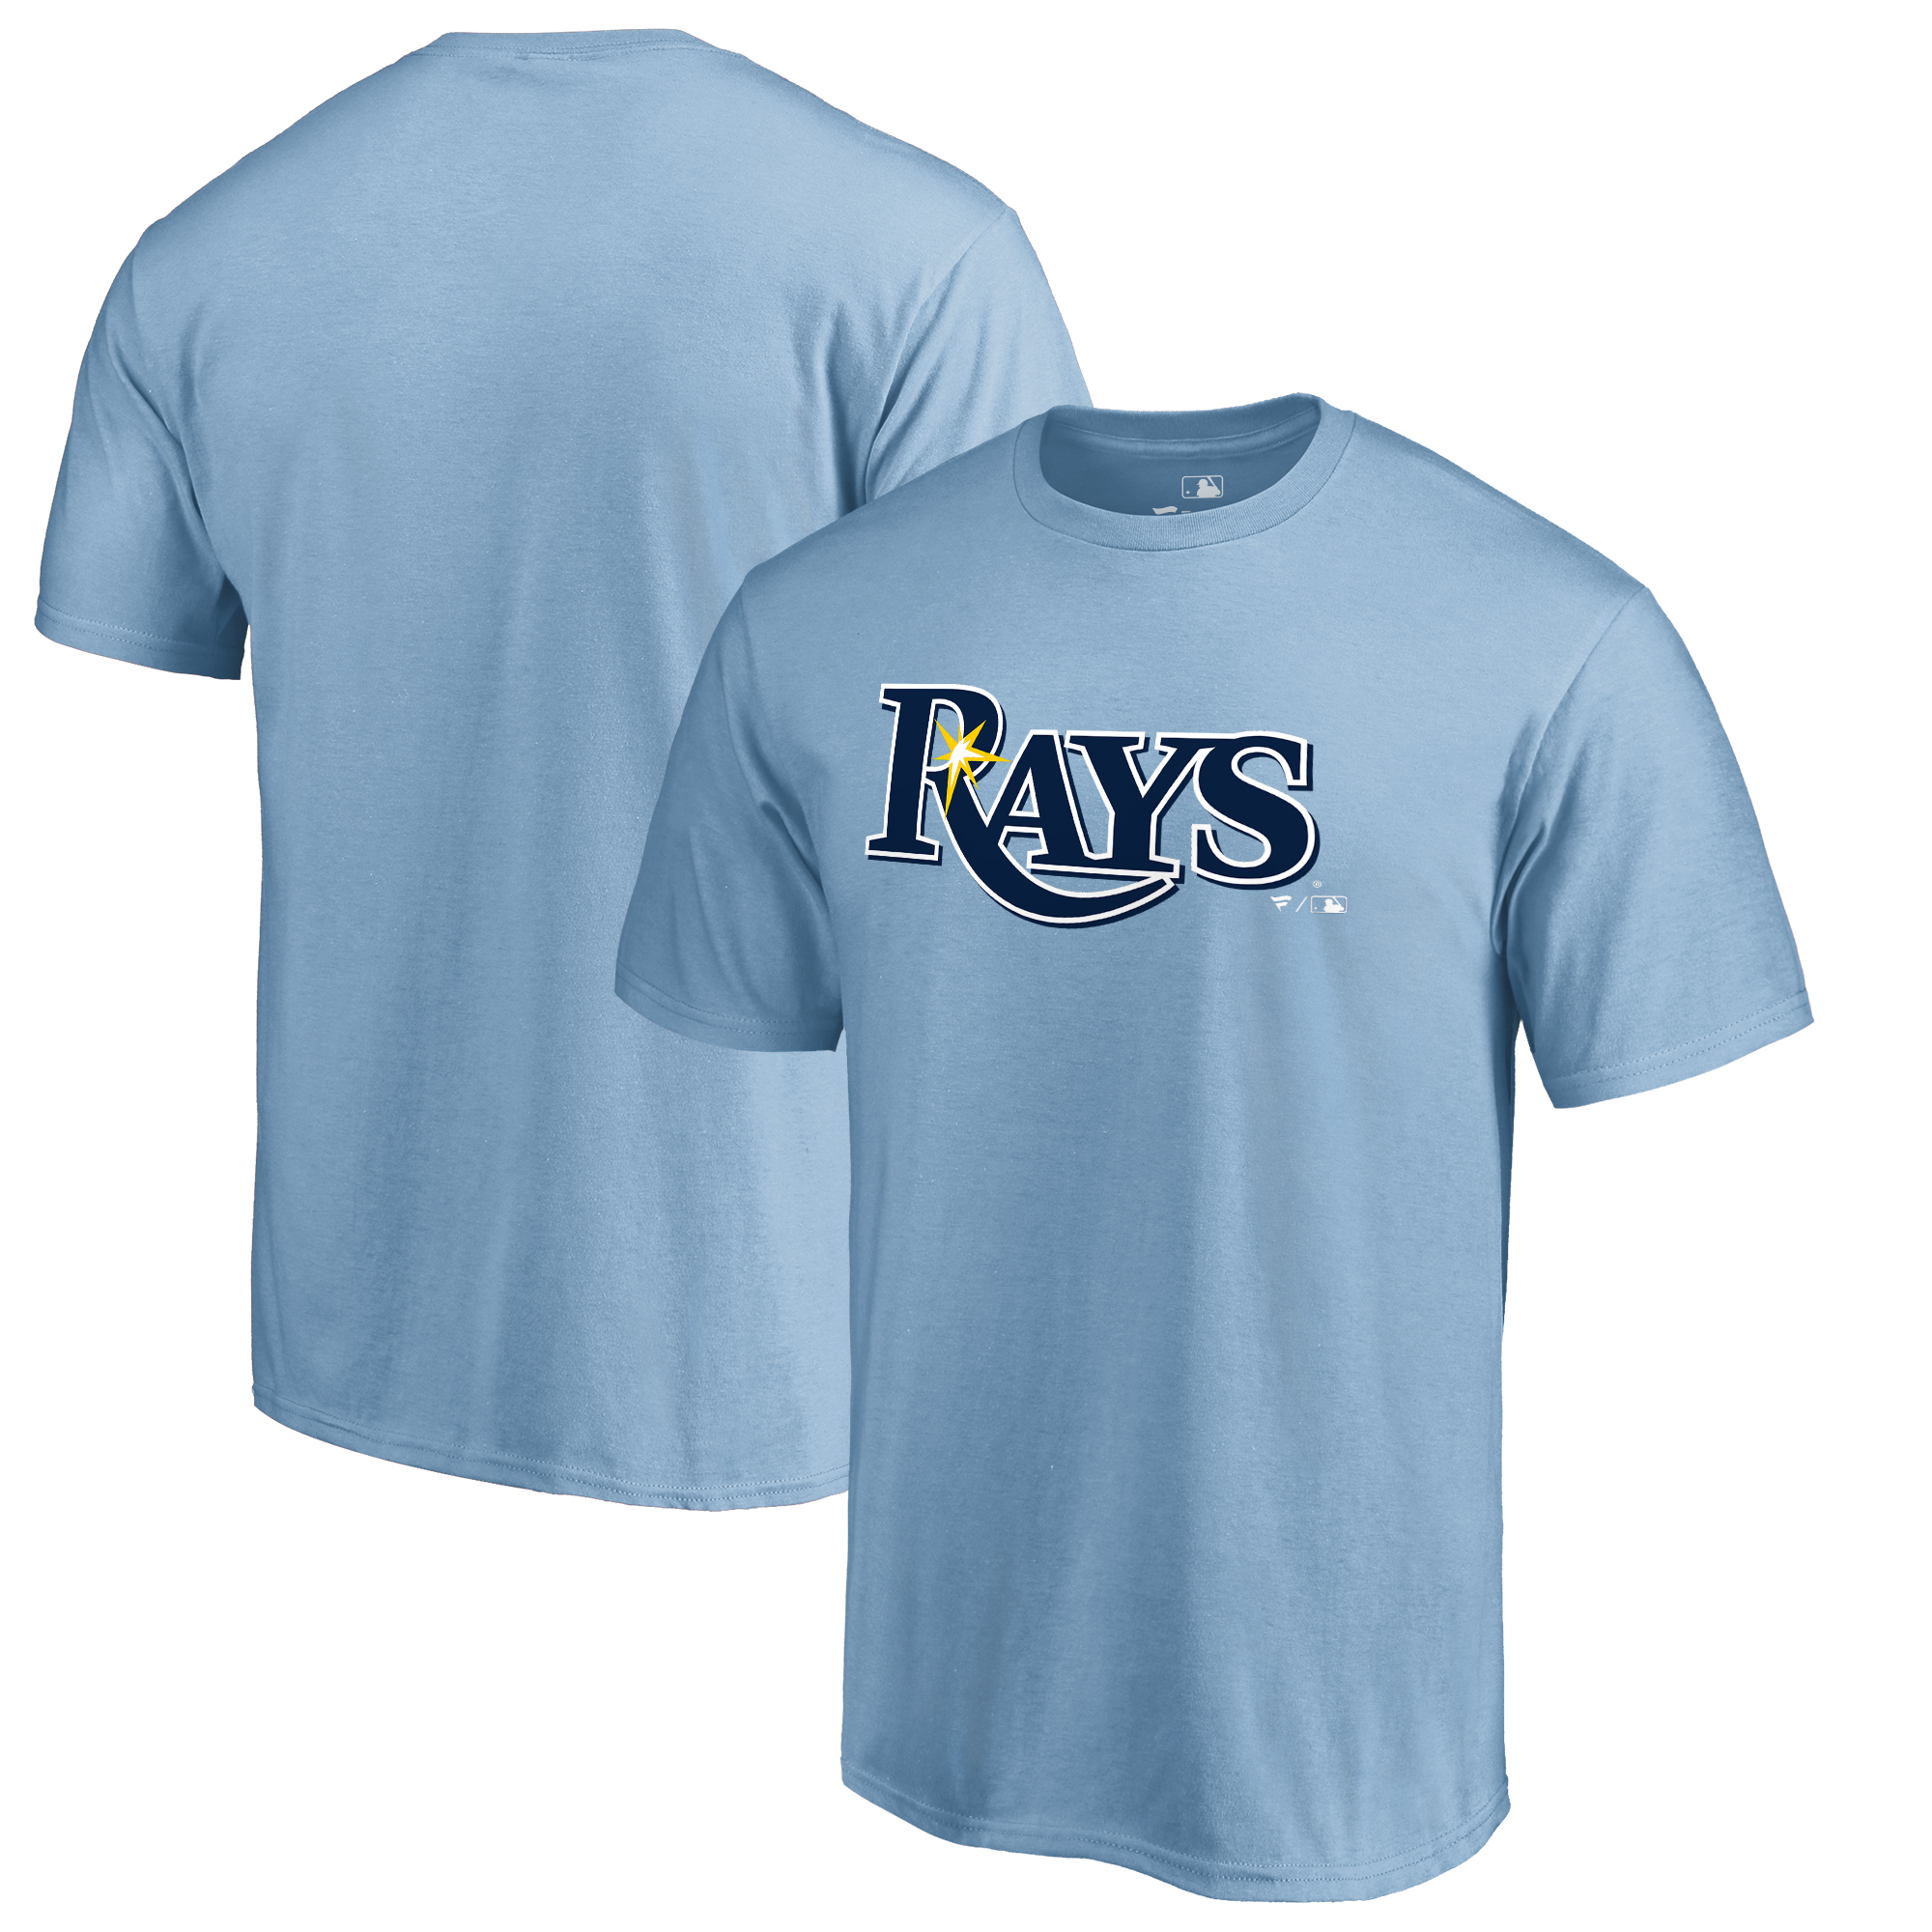 Tampa Bay Rays Fanatics Branded Team Wordmark T-Shirt - Light Blue